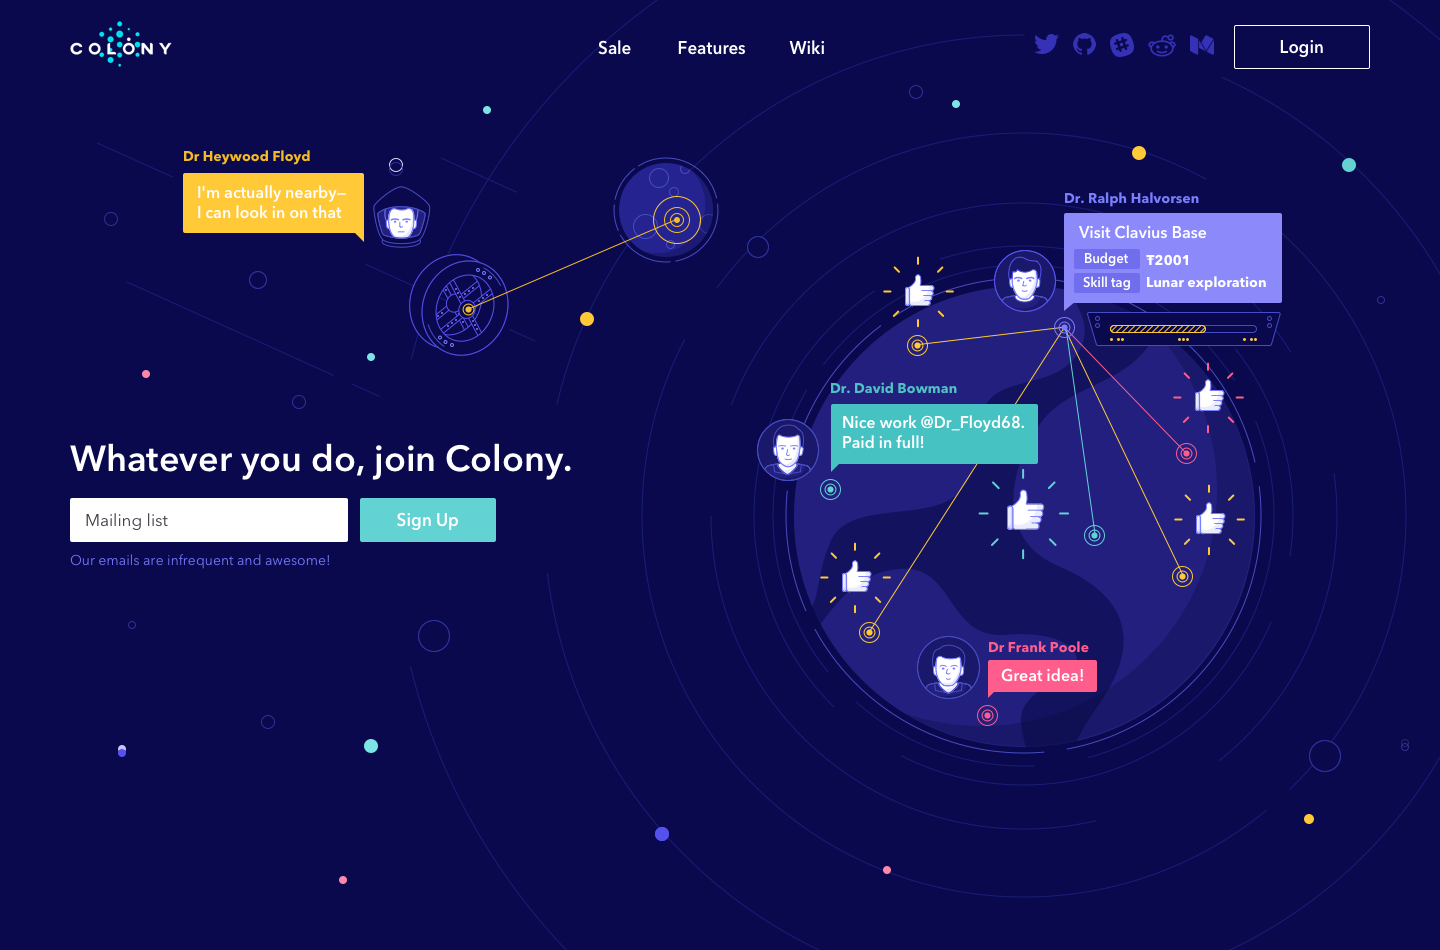 colony landing page design